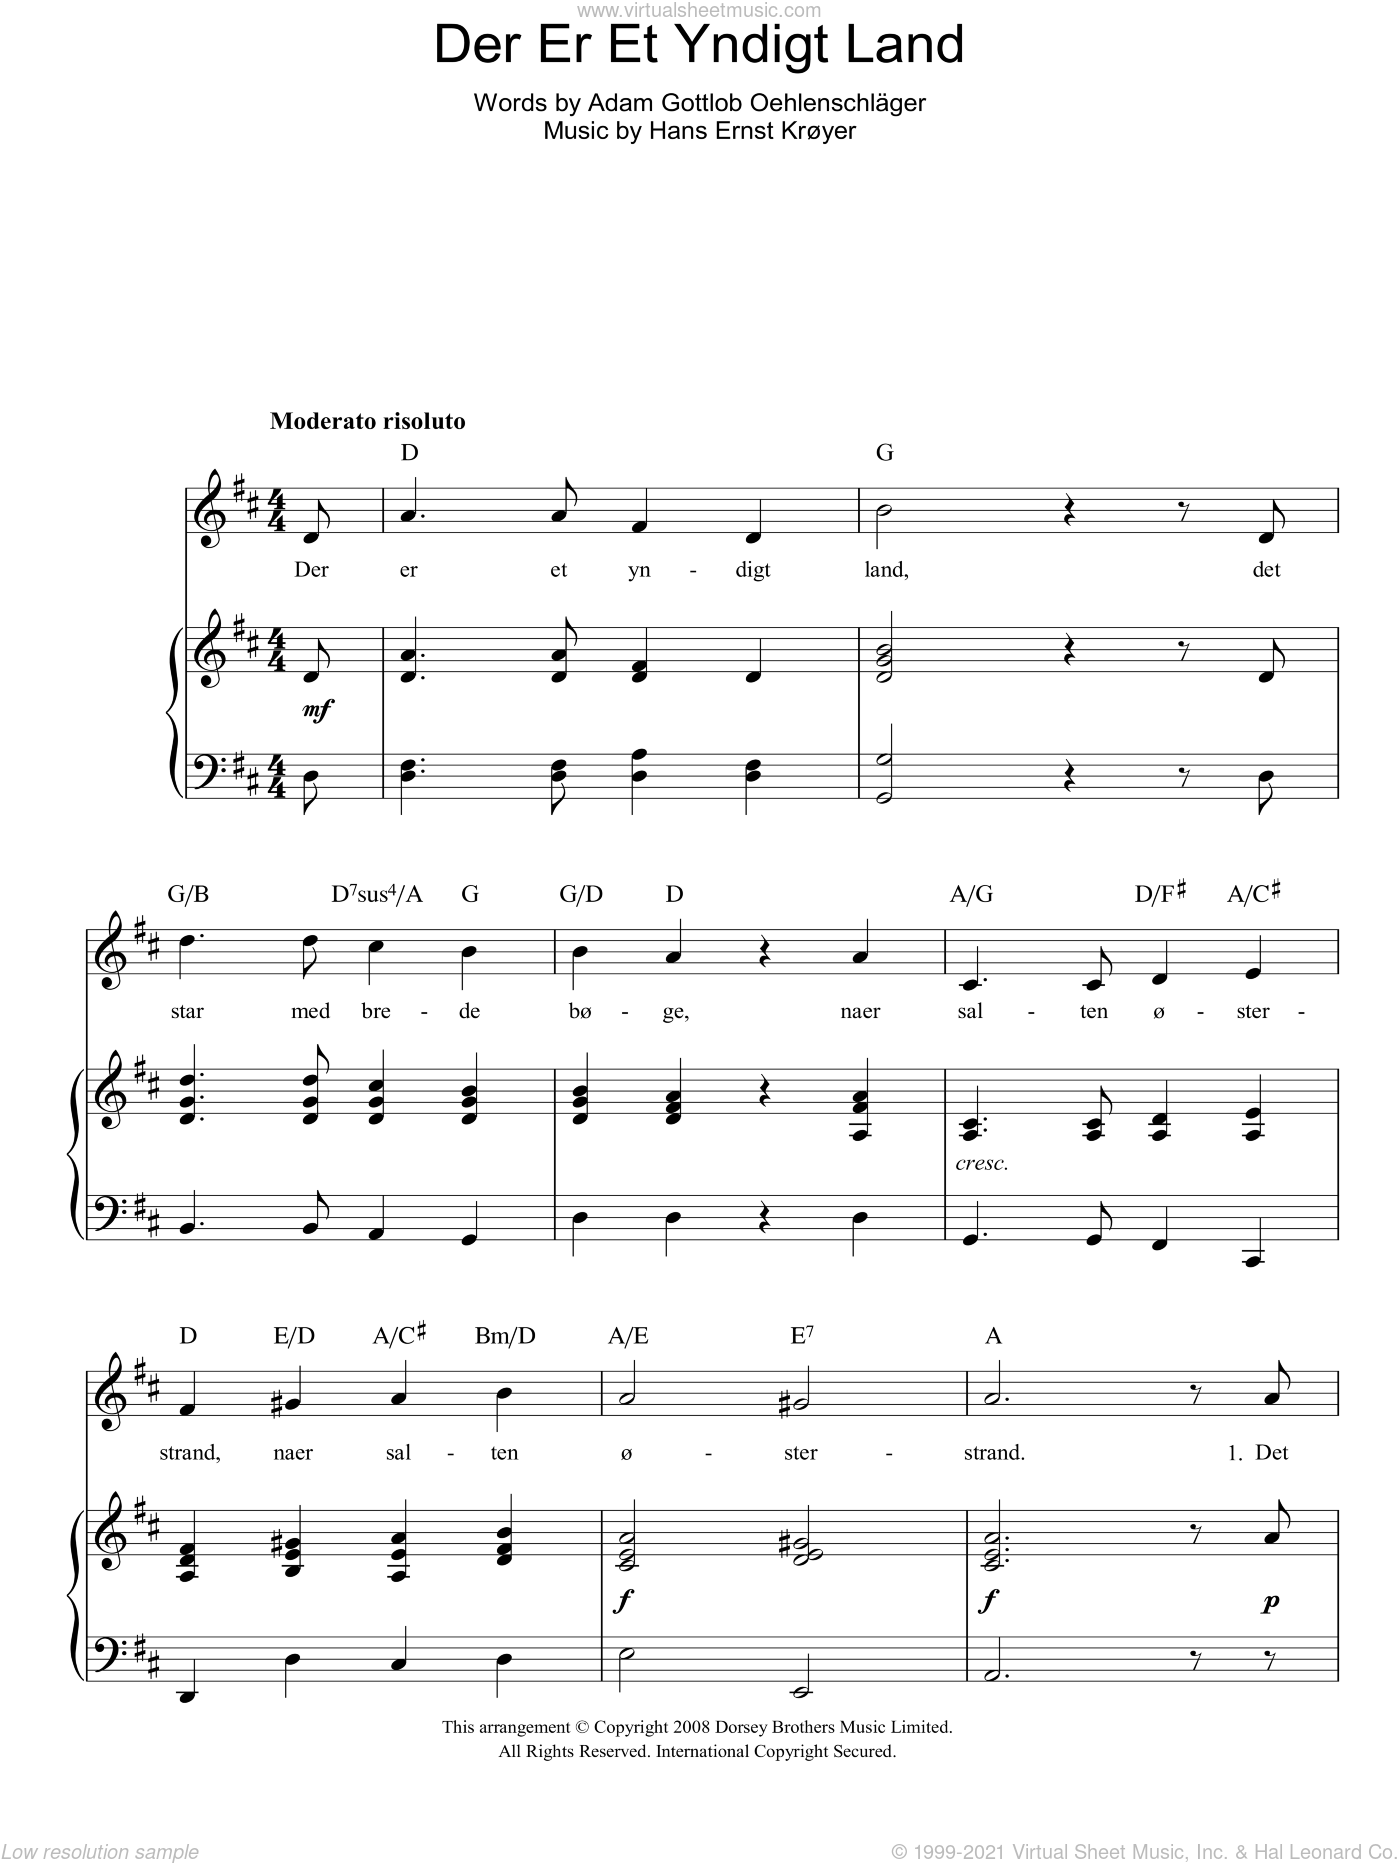 Der Er Et Yndigt Land (Danish National Anthem) sheet music for voice, piano or guitar by Adam Gottlob Oehlenschlager. Score Image Preview.